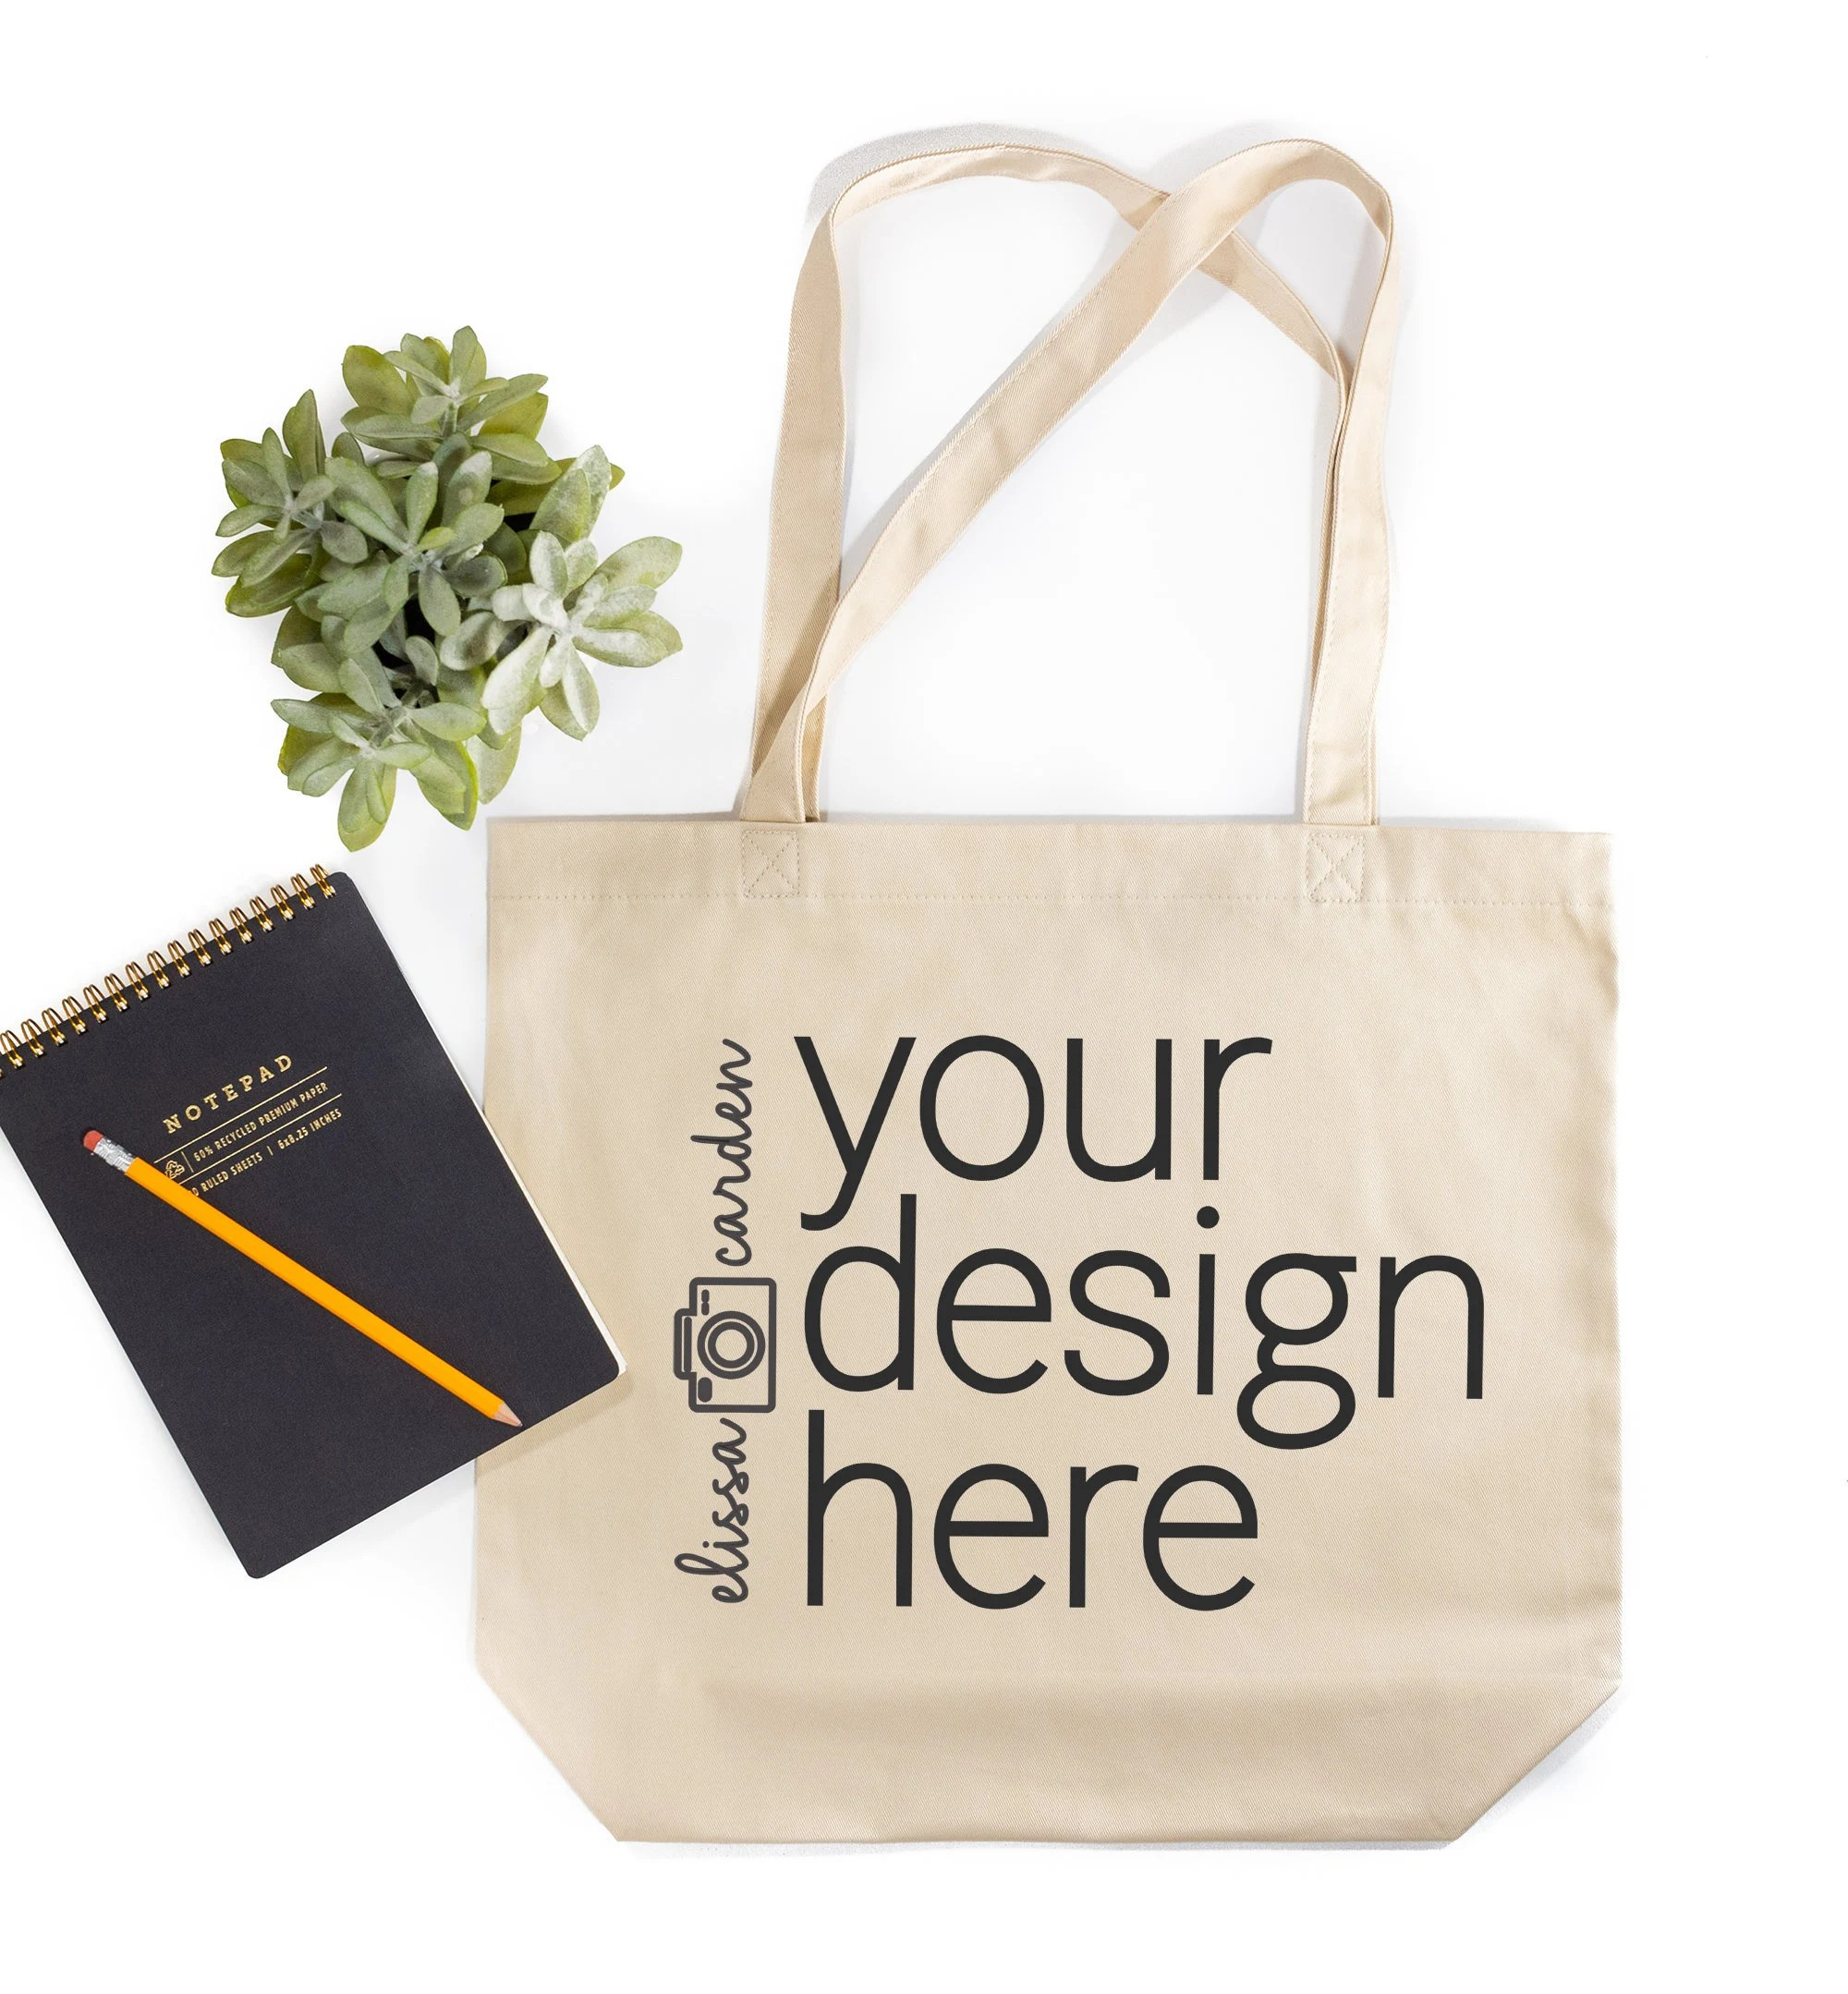 These mockups can serve to showcase your packaging designs, logos, or any other branding. Organic Tote Bag Mockup Oyster Tote Mockup Bag Totes Etsy